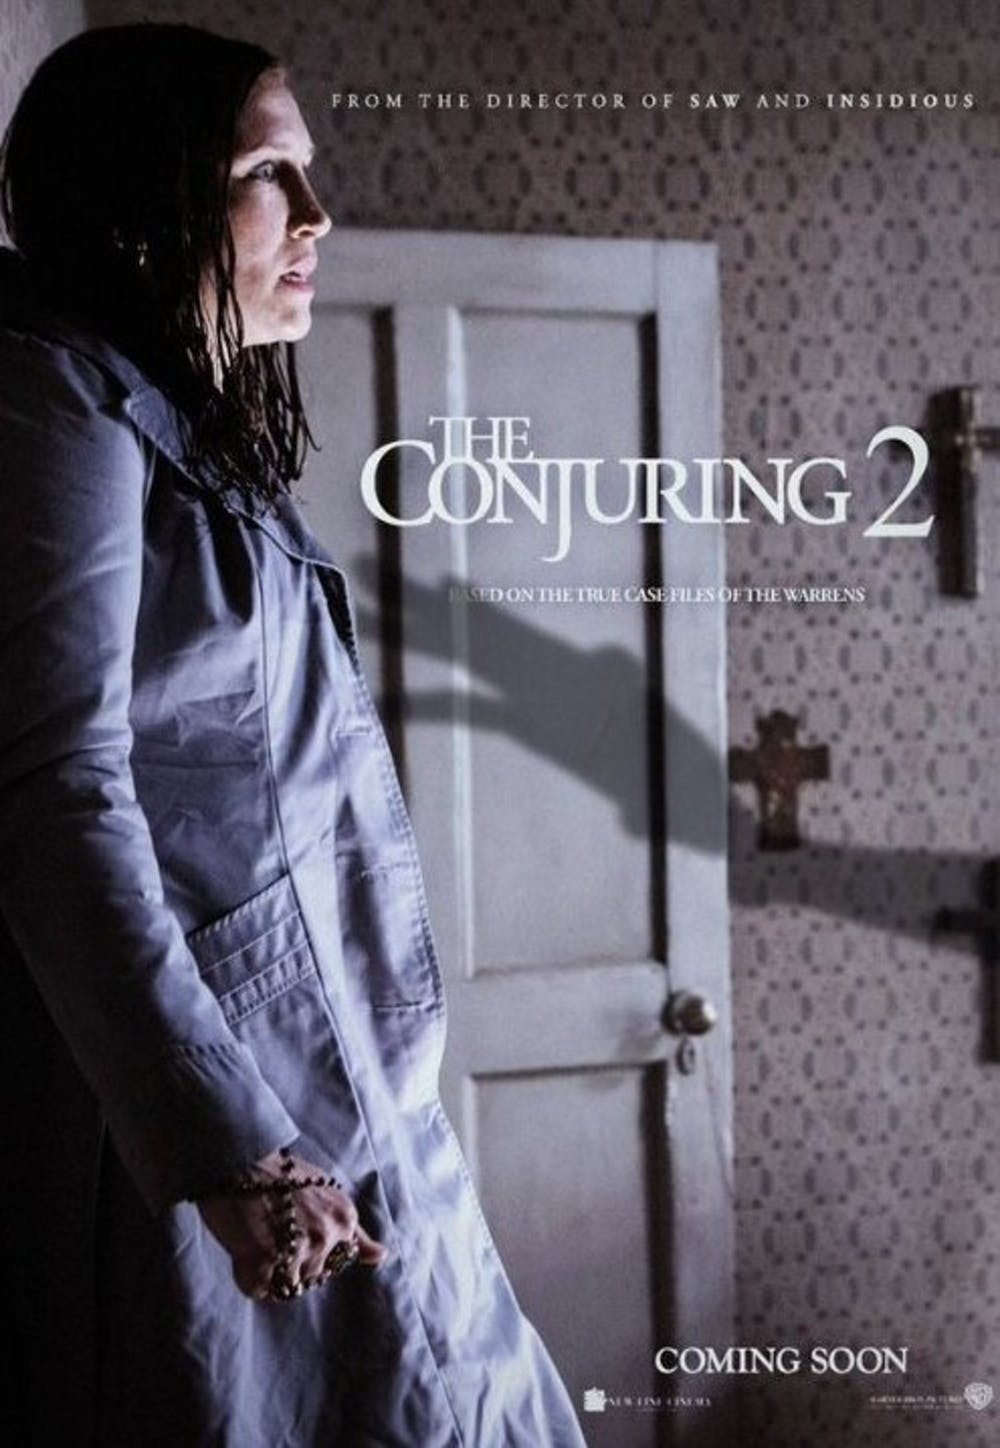 aeconjuring2courtesywarnerbrospictures